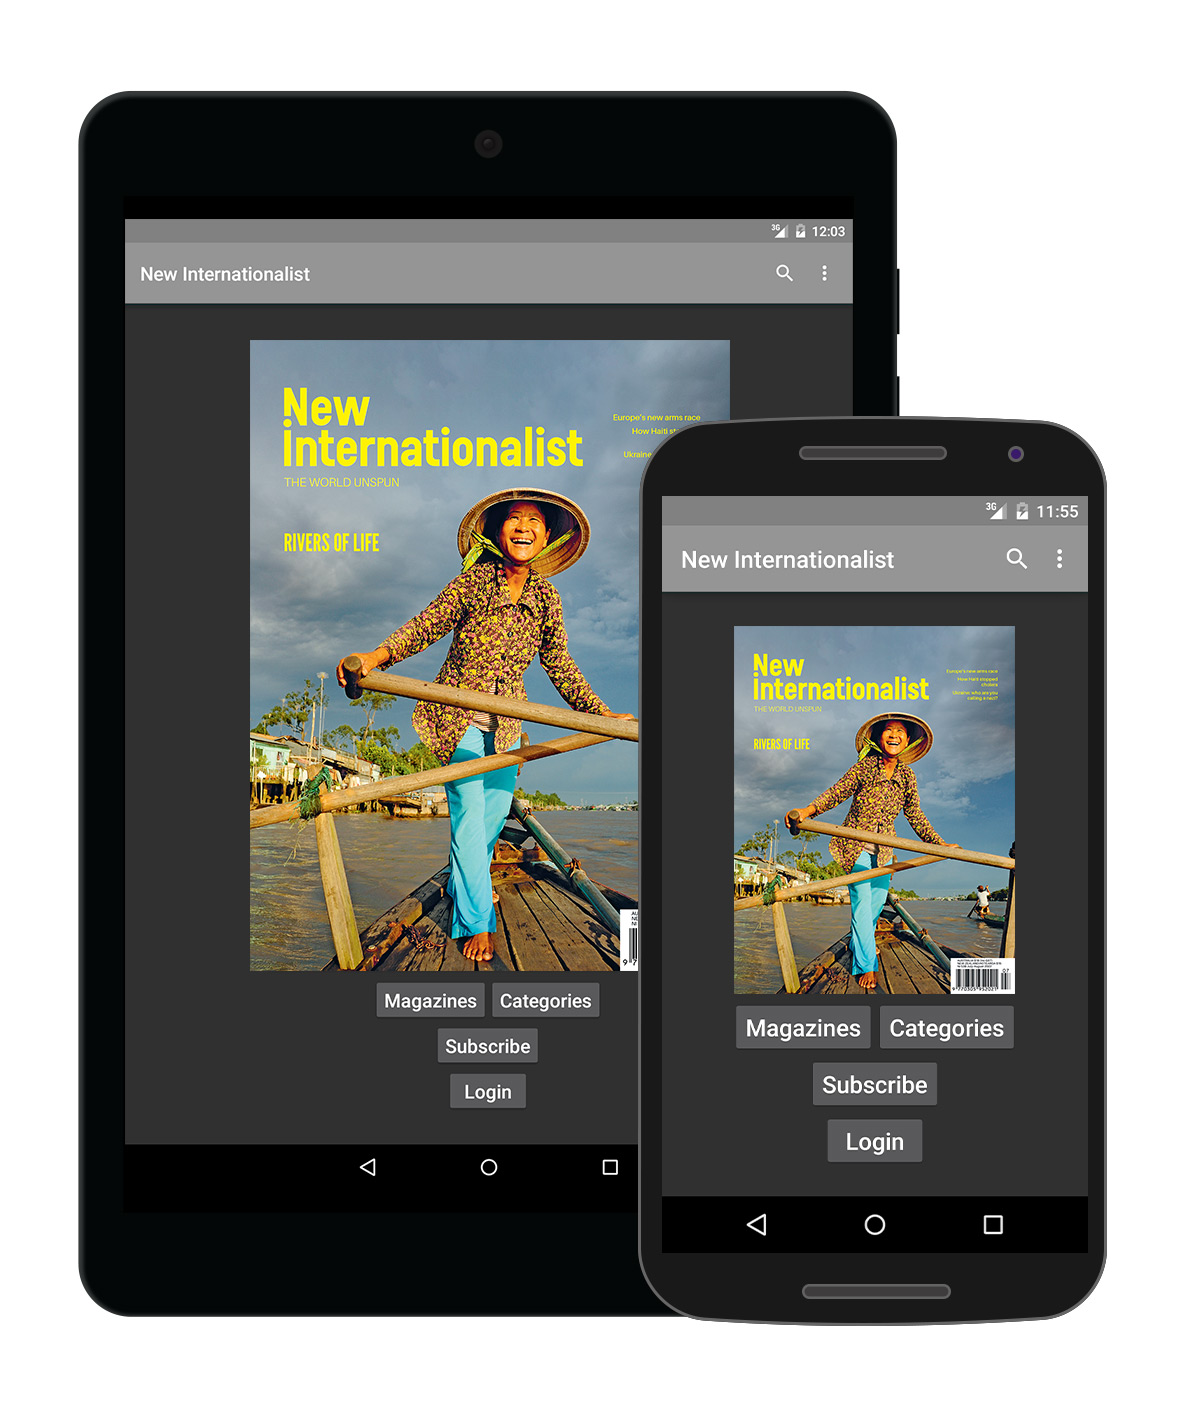 New Internationalist magazine app for Android.